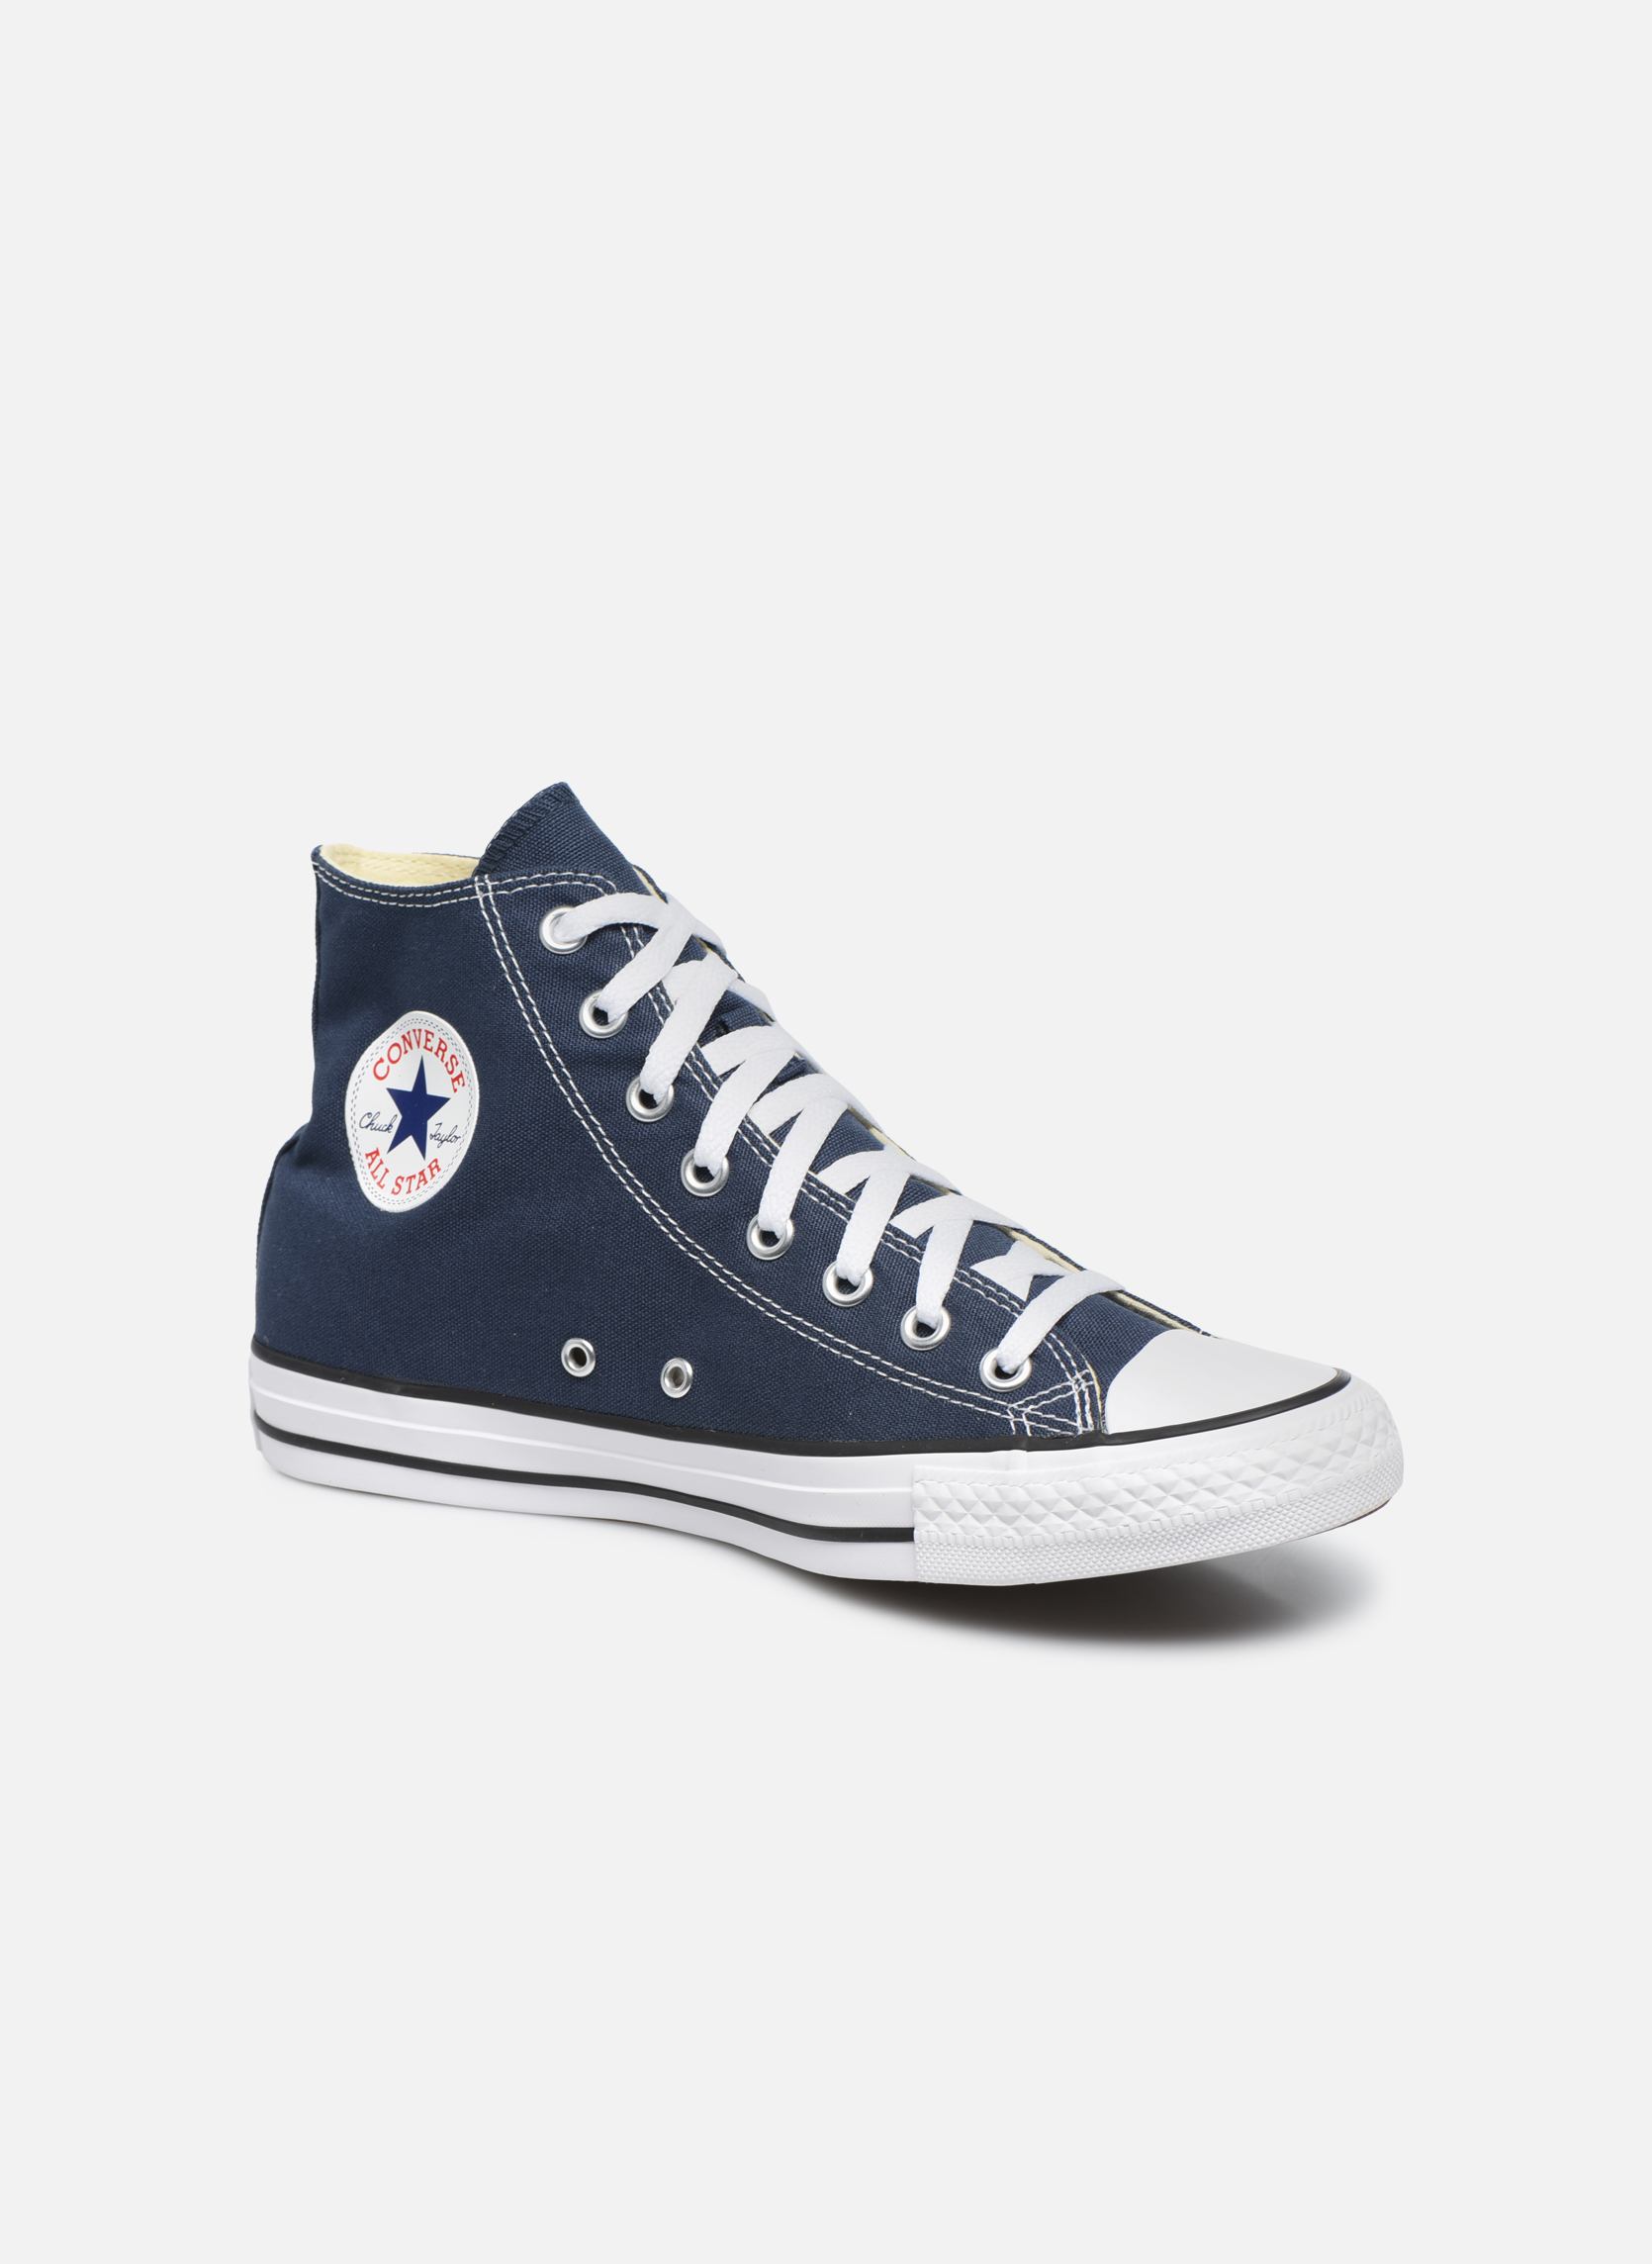 Converse Chuck Taylor All Star Hi M